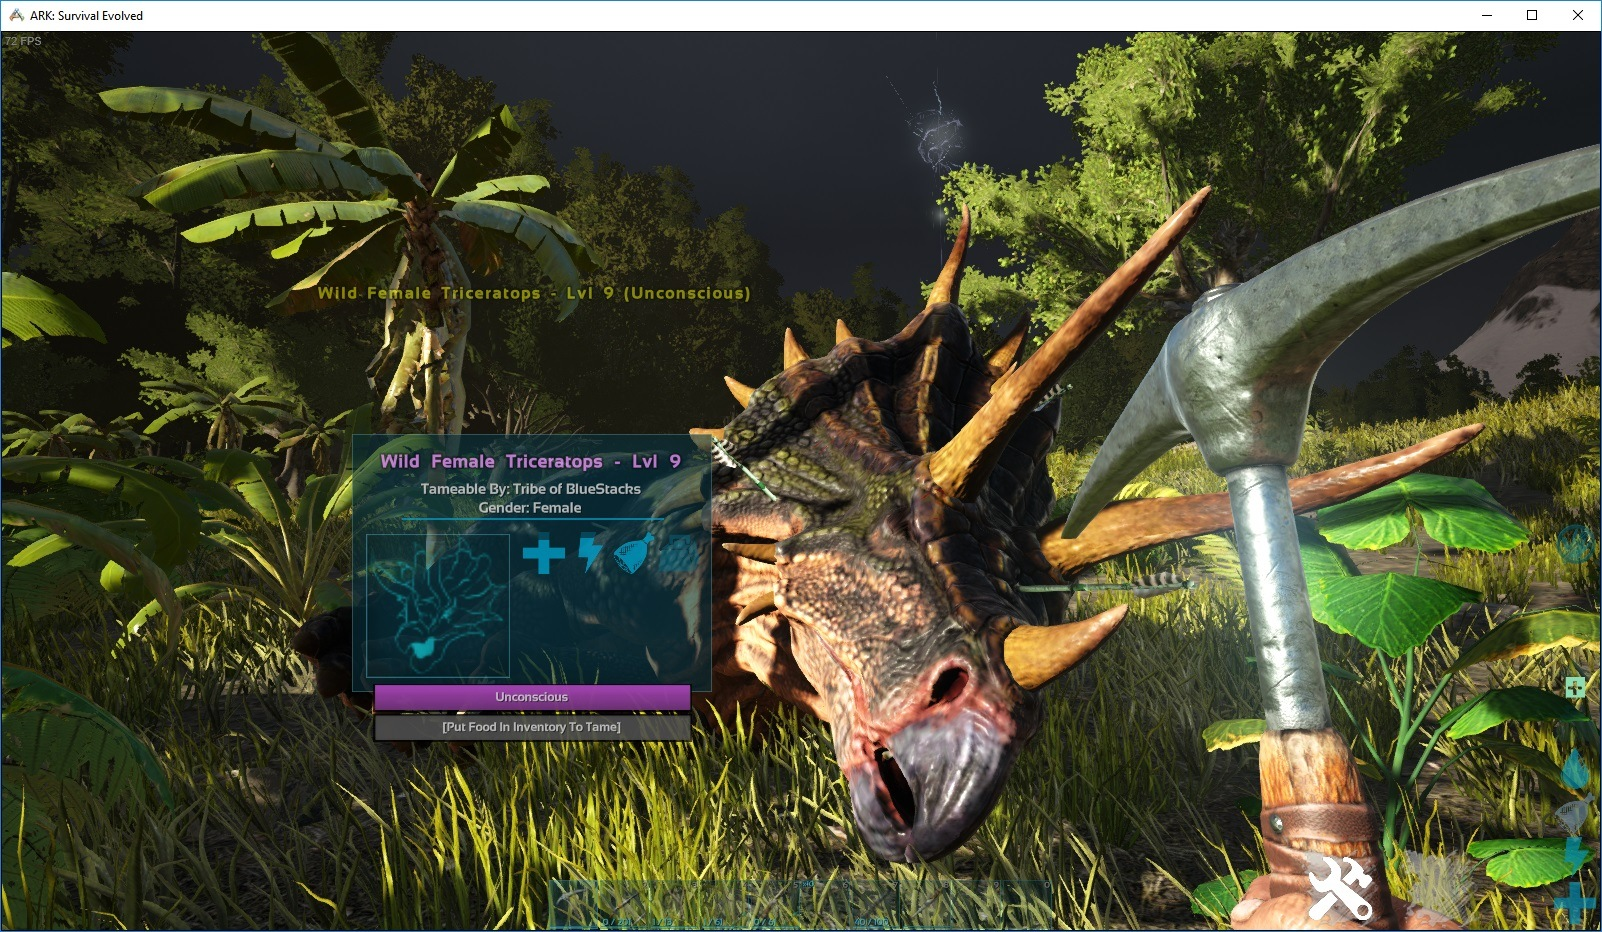 How To Tame Dinos In ARK: Survival Evolved